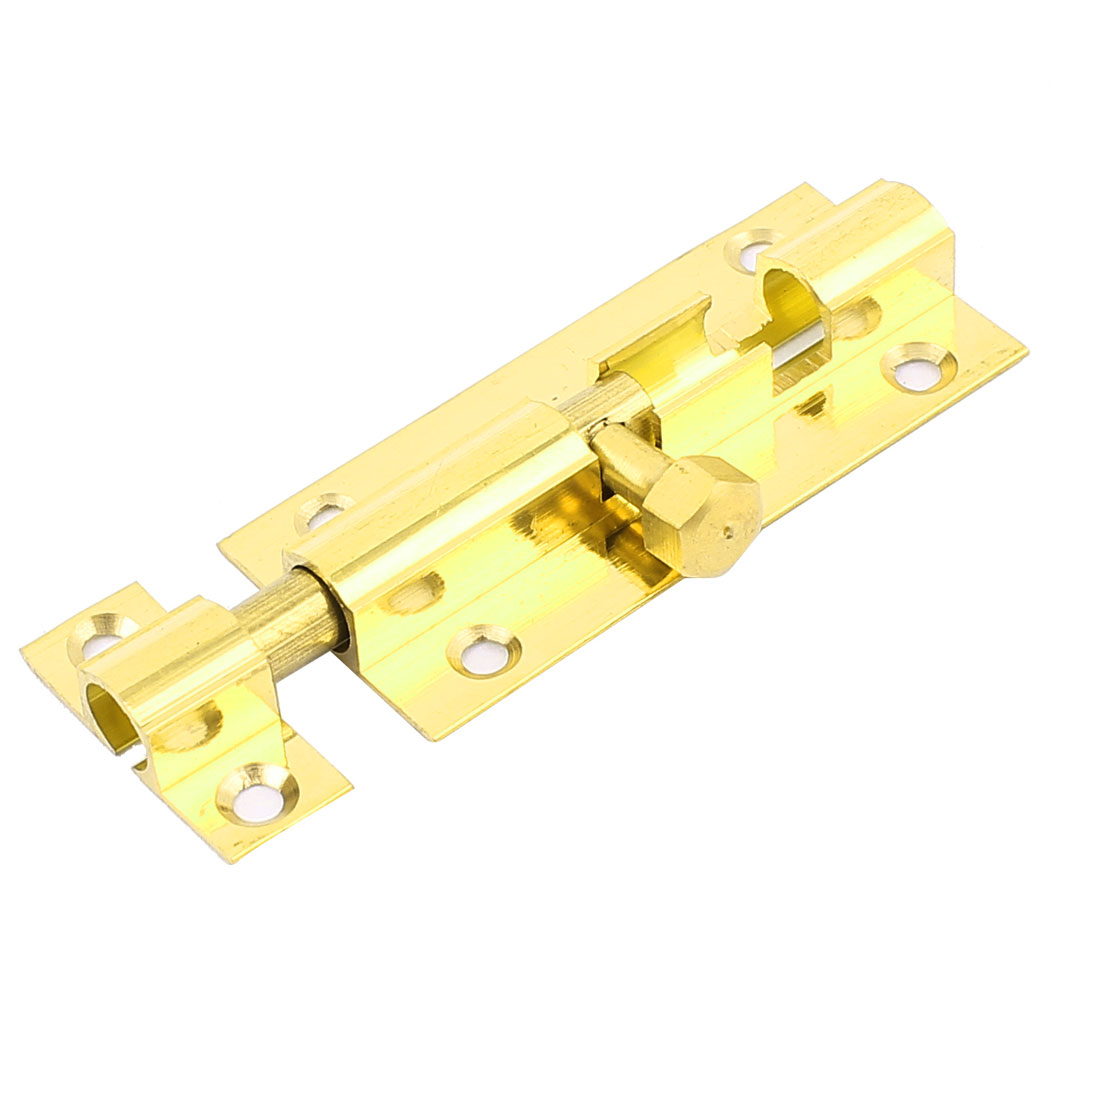 "Door Windows Latch Barrel Bolt Security Lock 2"" Brass Tone"